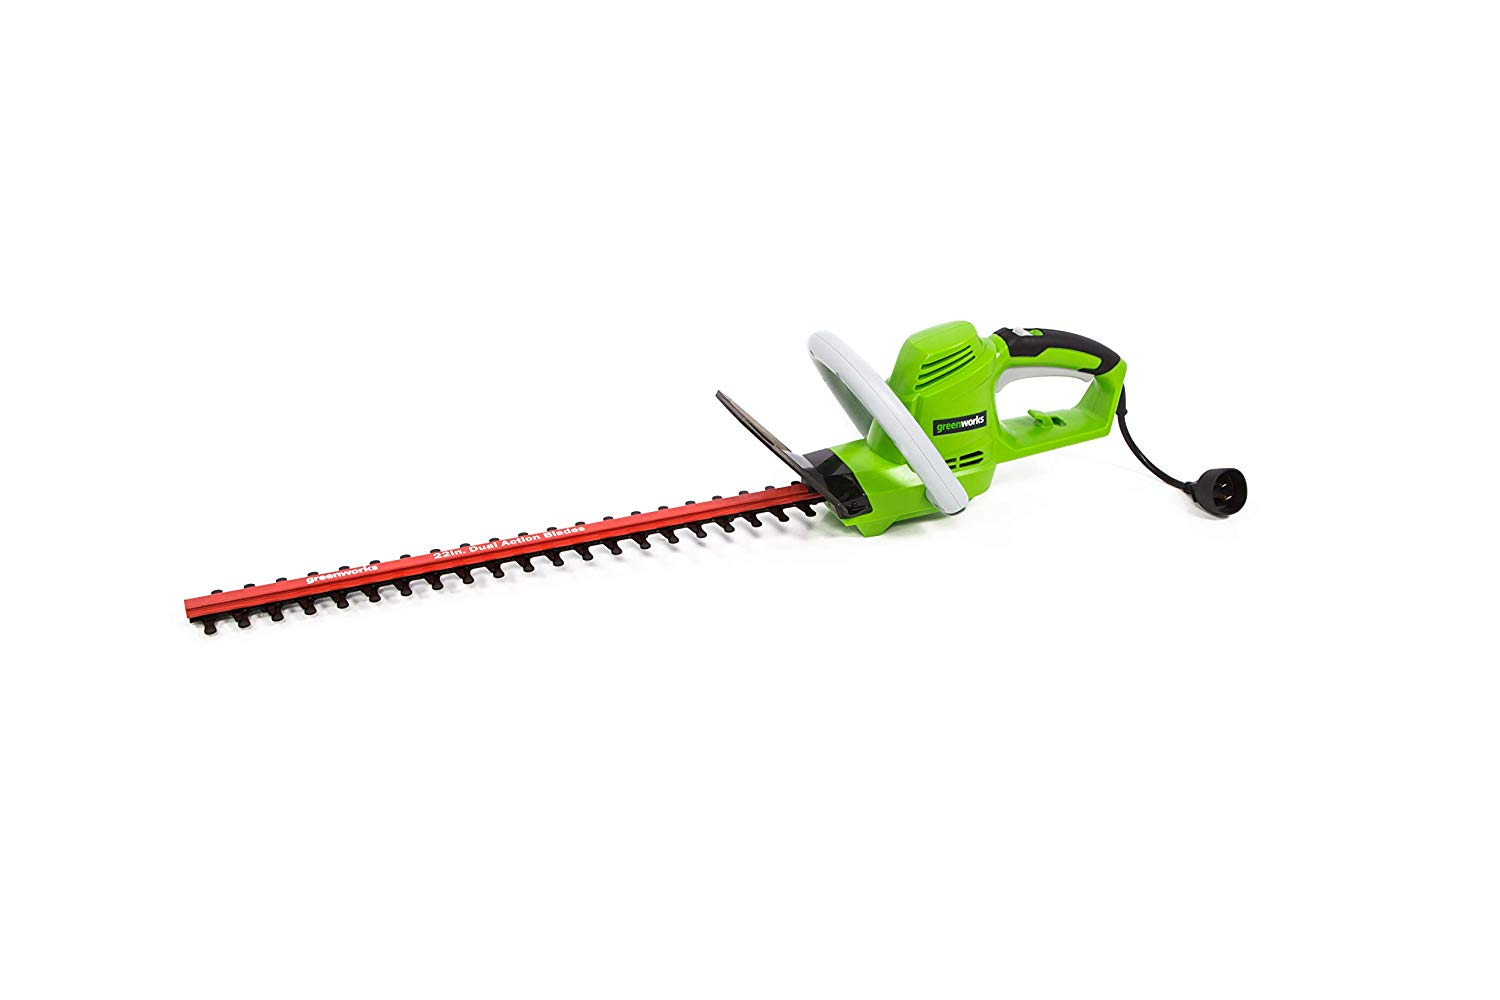 (HT04B00) Corded Hedge Trimmer from Greenworks